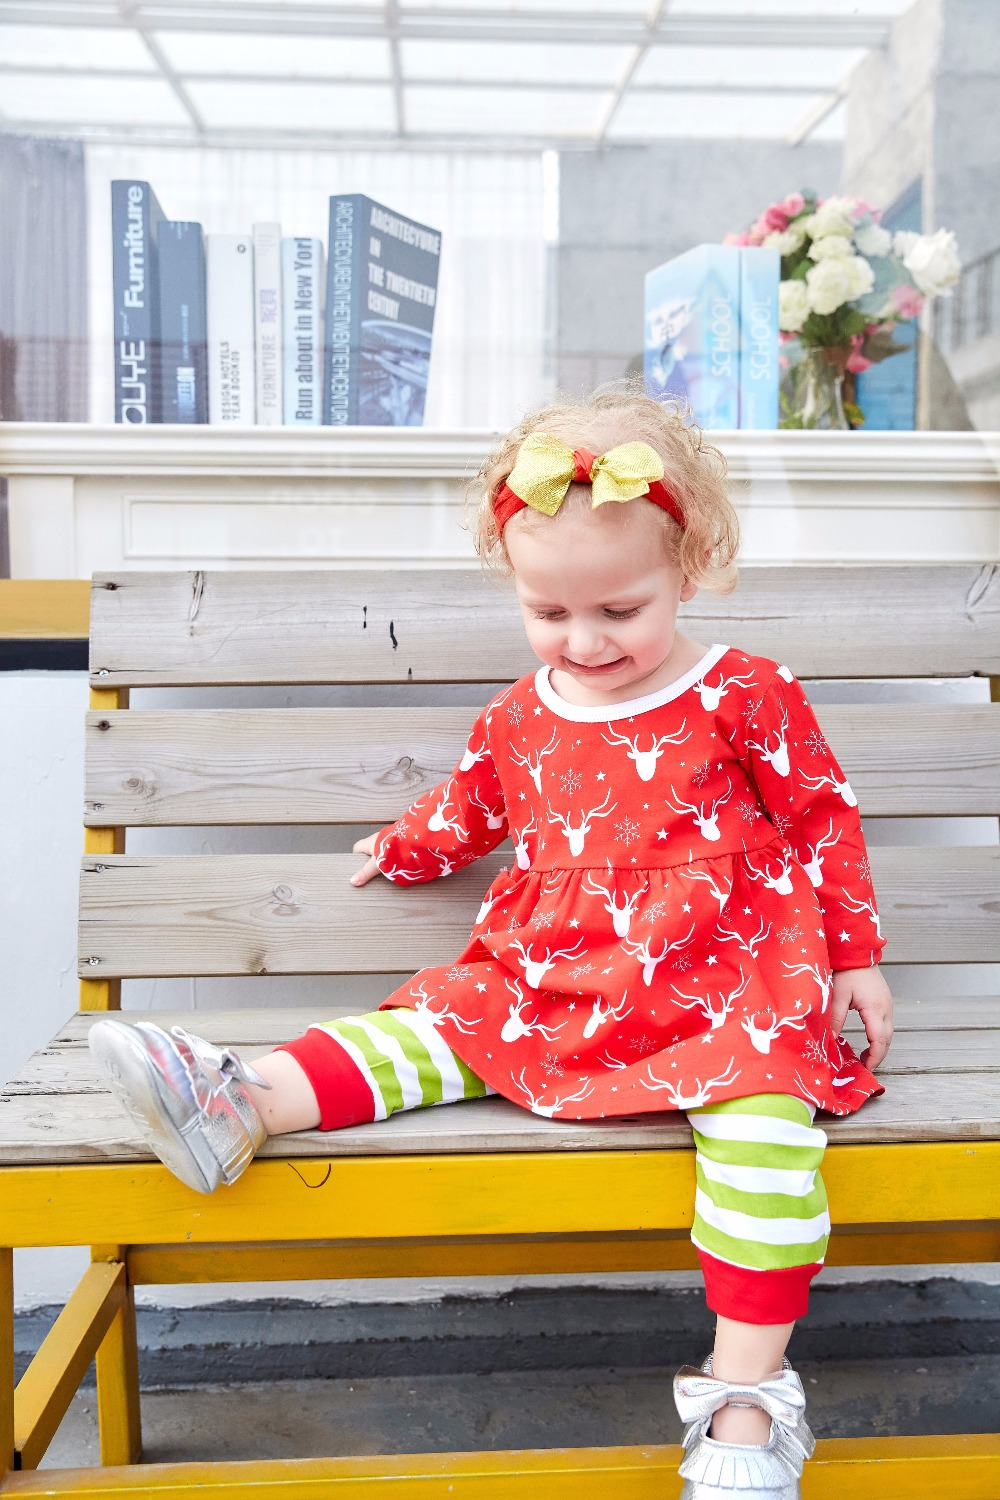 c04dfeea65e0 Newborn Baby Girls Christmas Outfit cotton Romper with Striped Pants  outfits Jumpsuit Costume 2017 baby thanksgiving clothing Tags